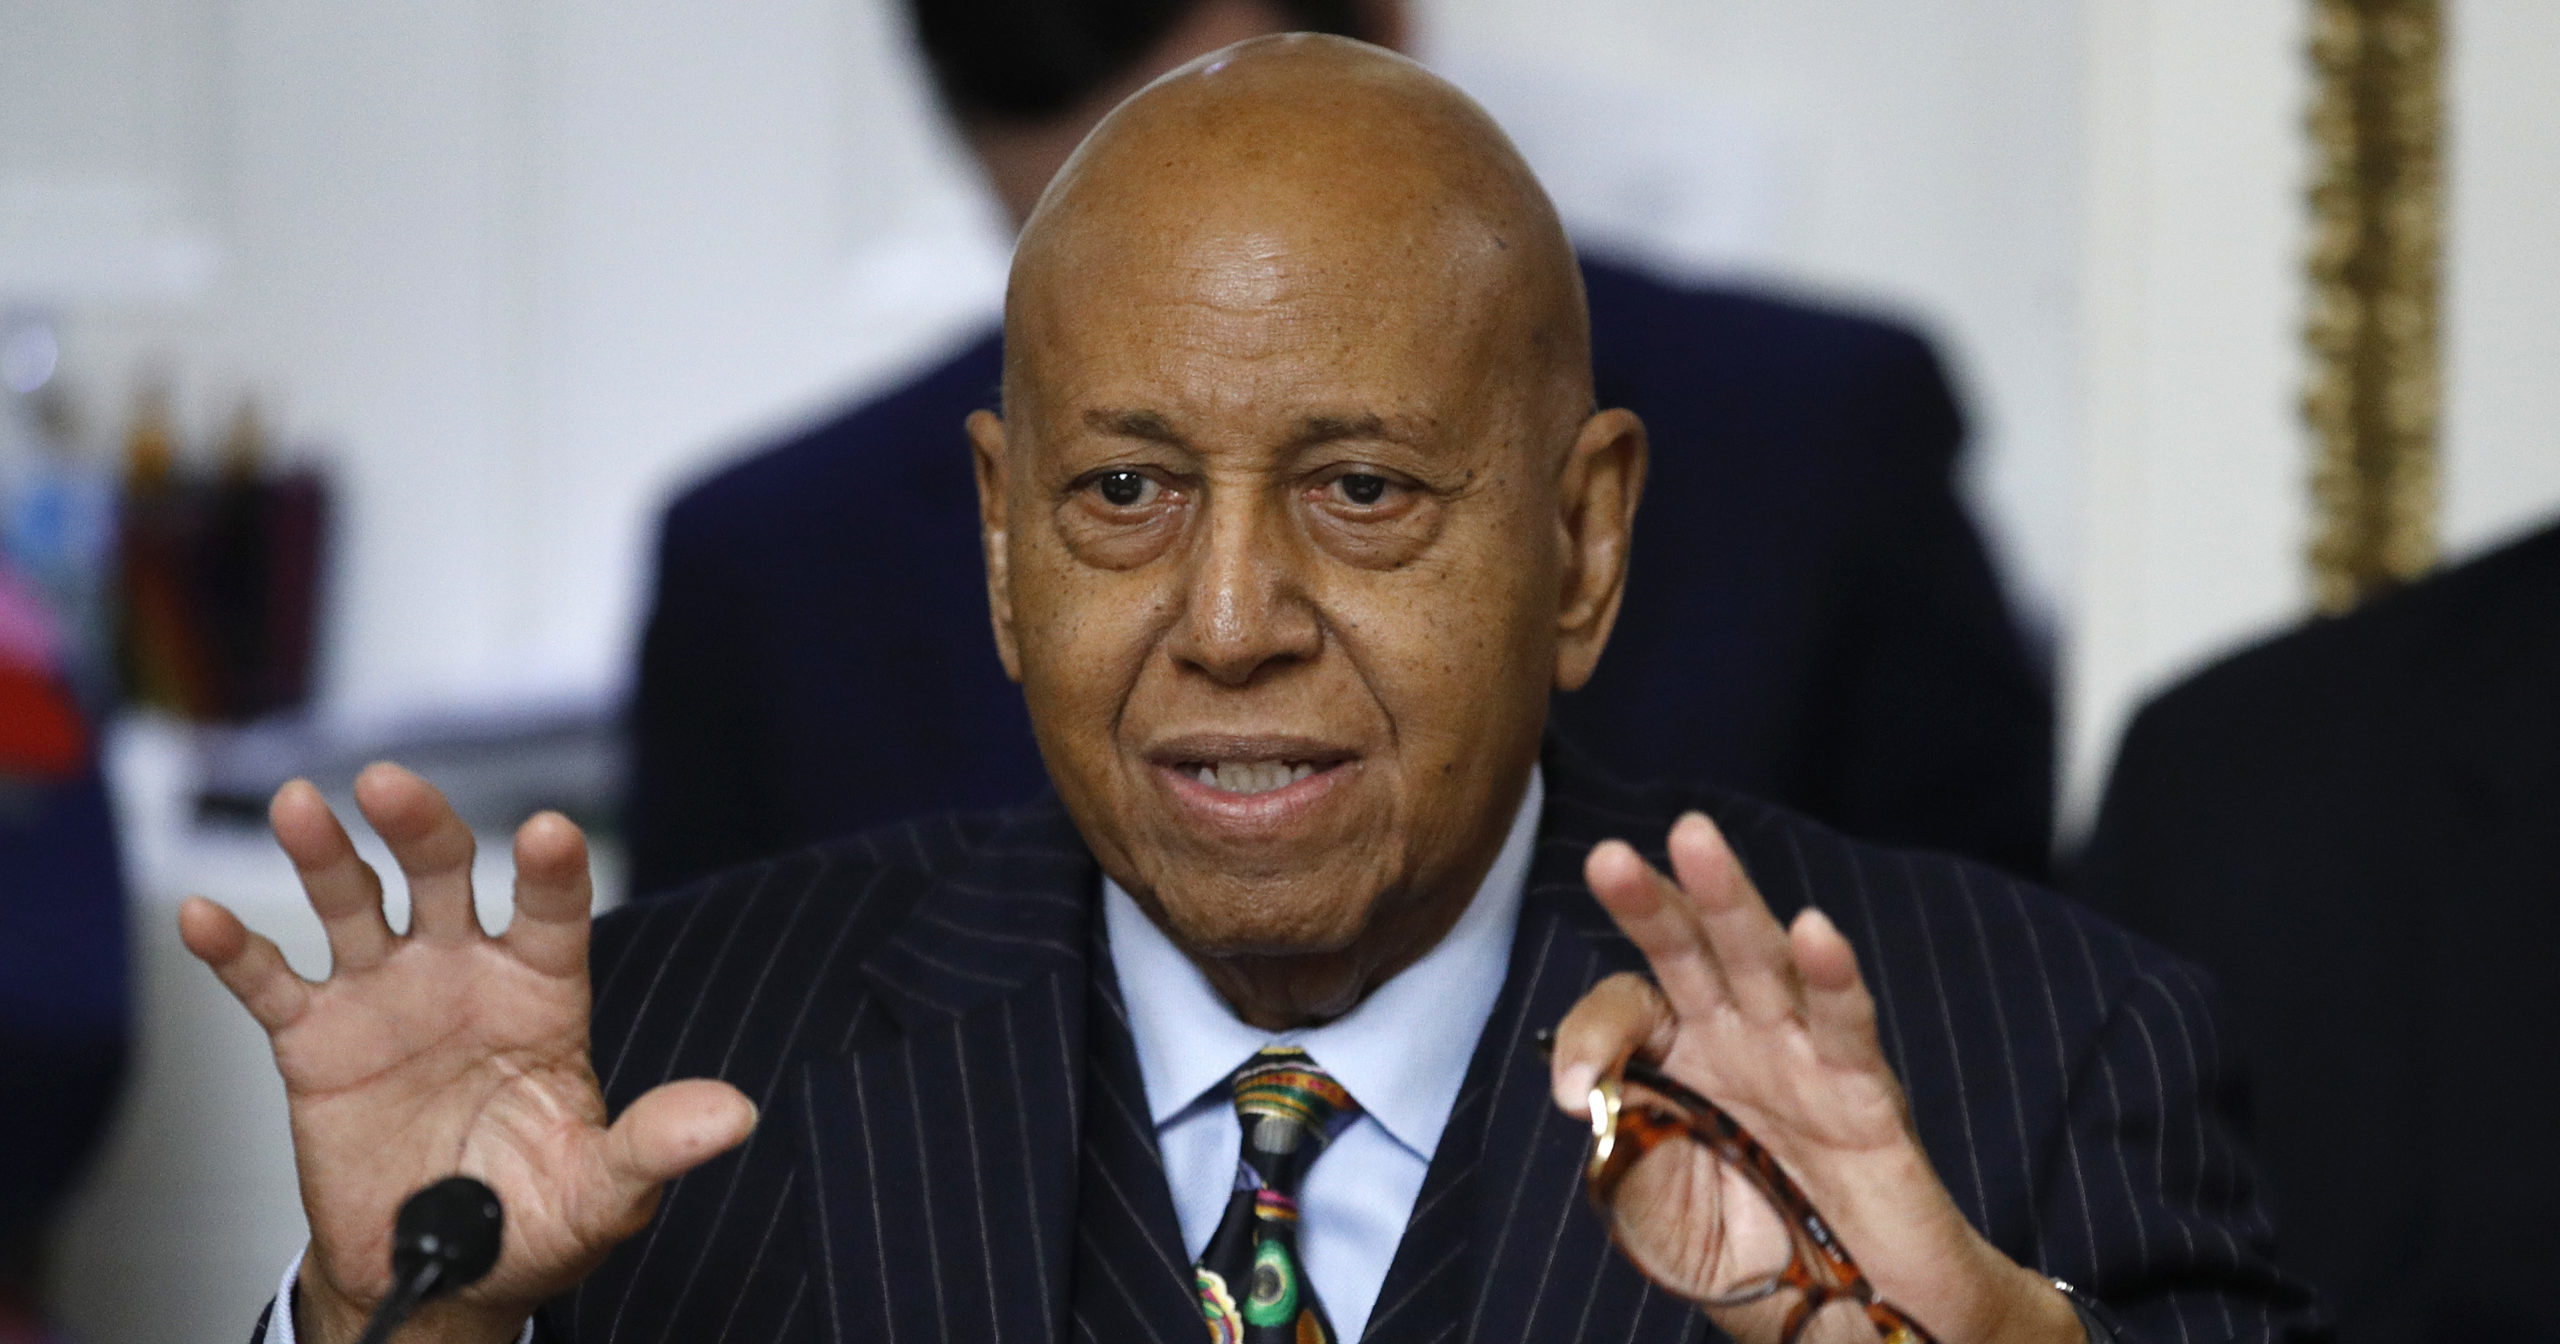 Democratic Rep. Alcee Hastings of Florida speaks during a House Rules Committee hearing on Capitol Hill in Washington on Dec. 17, 2019.